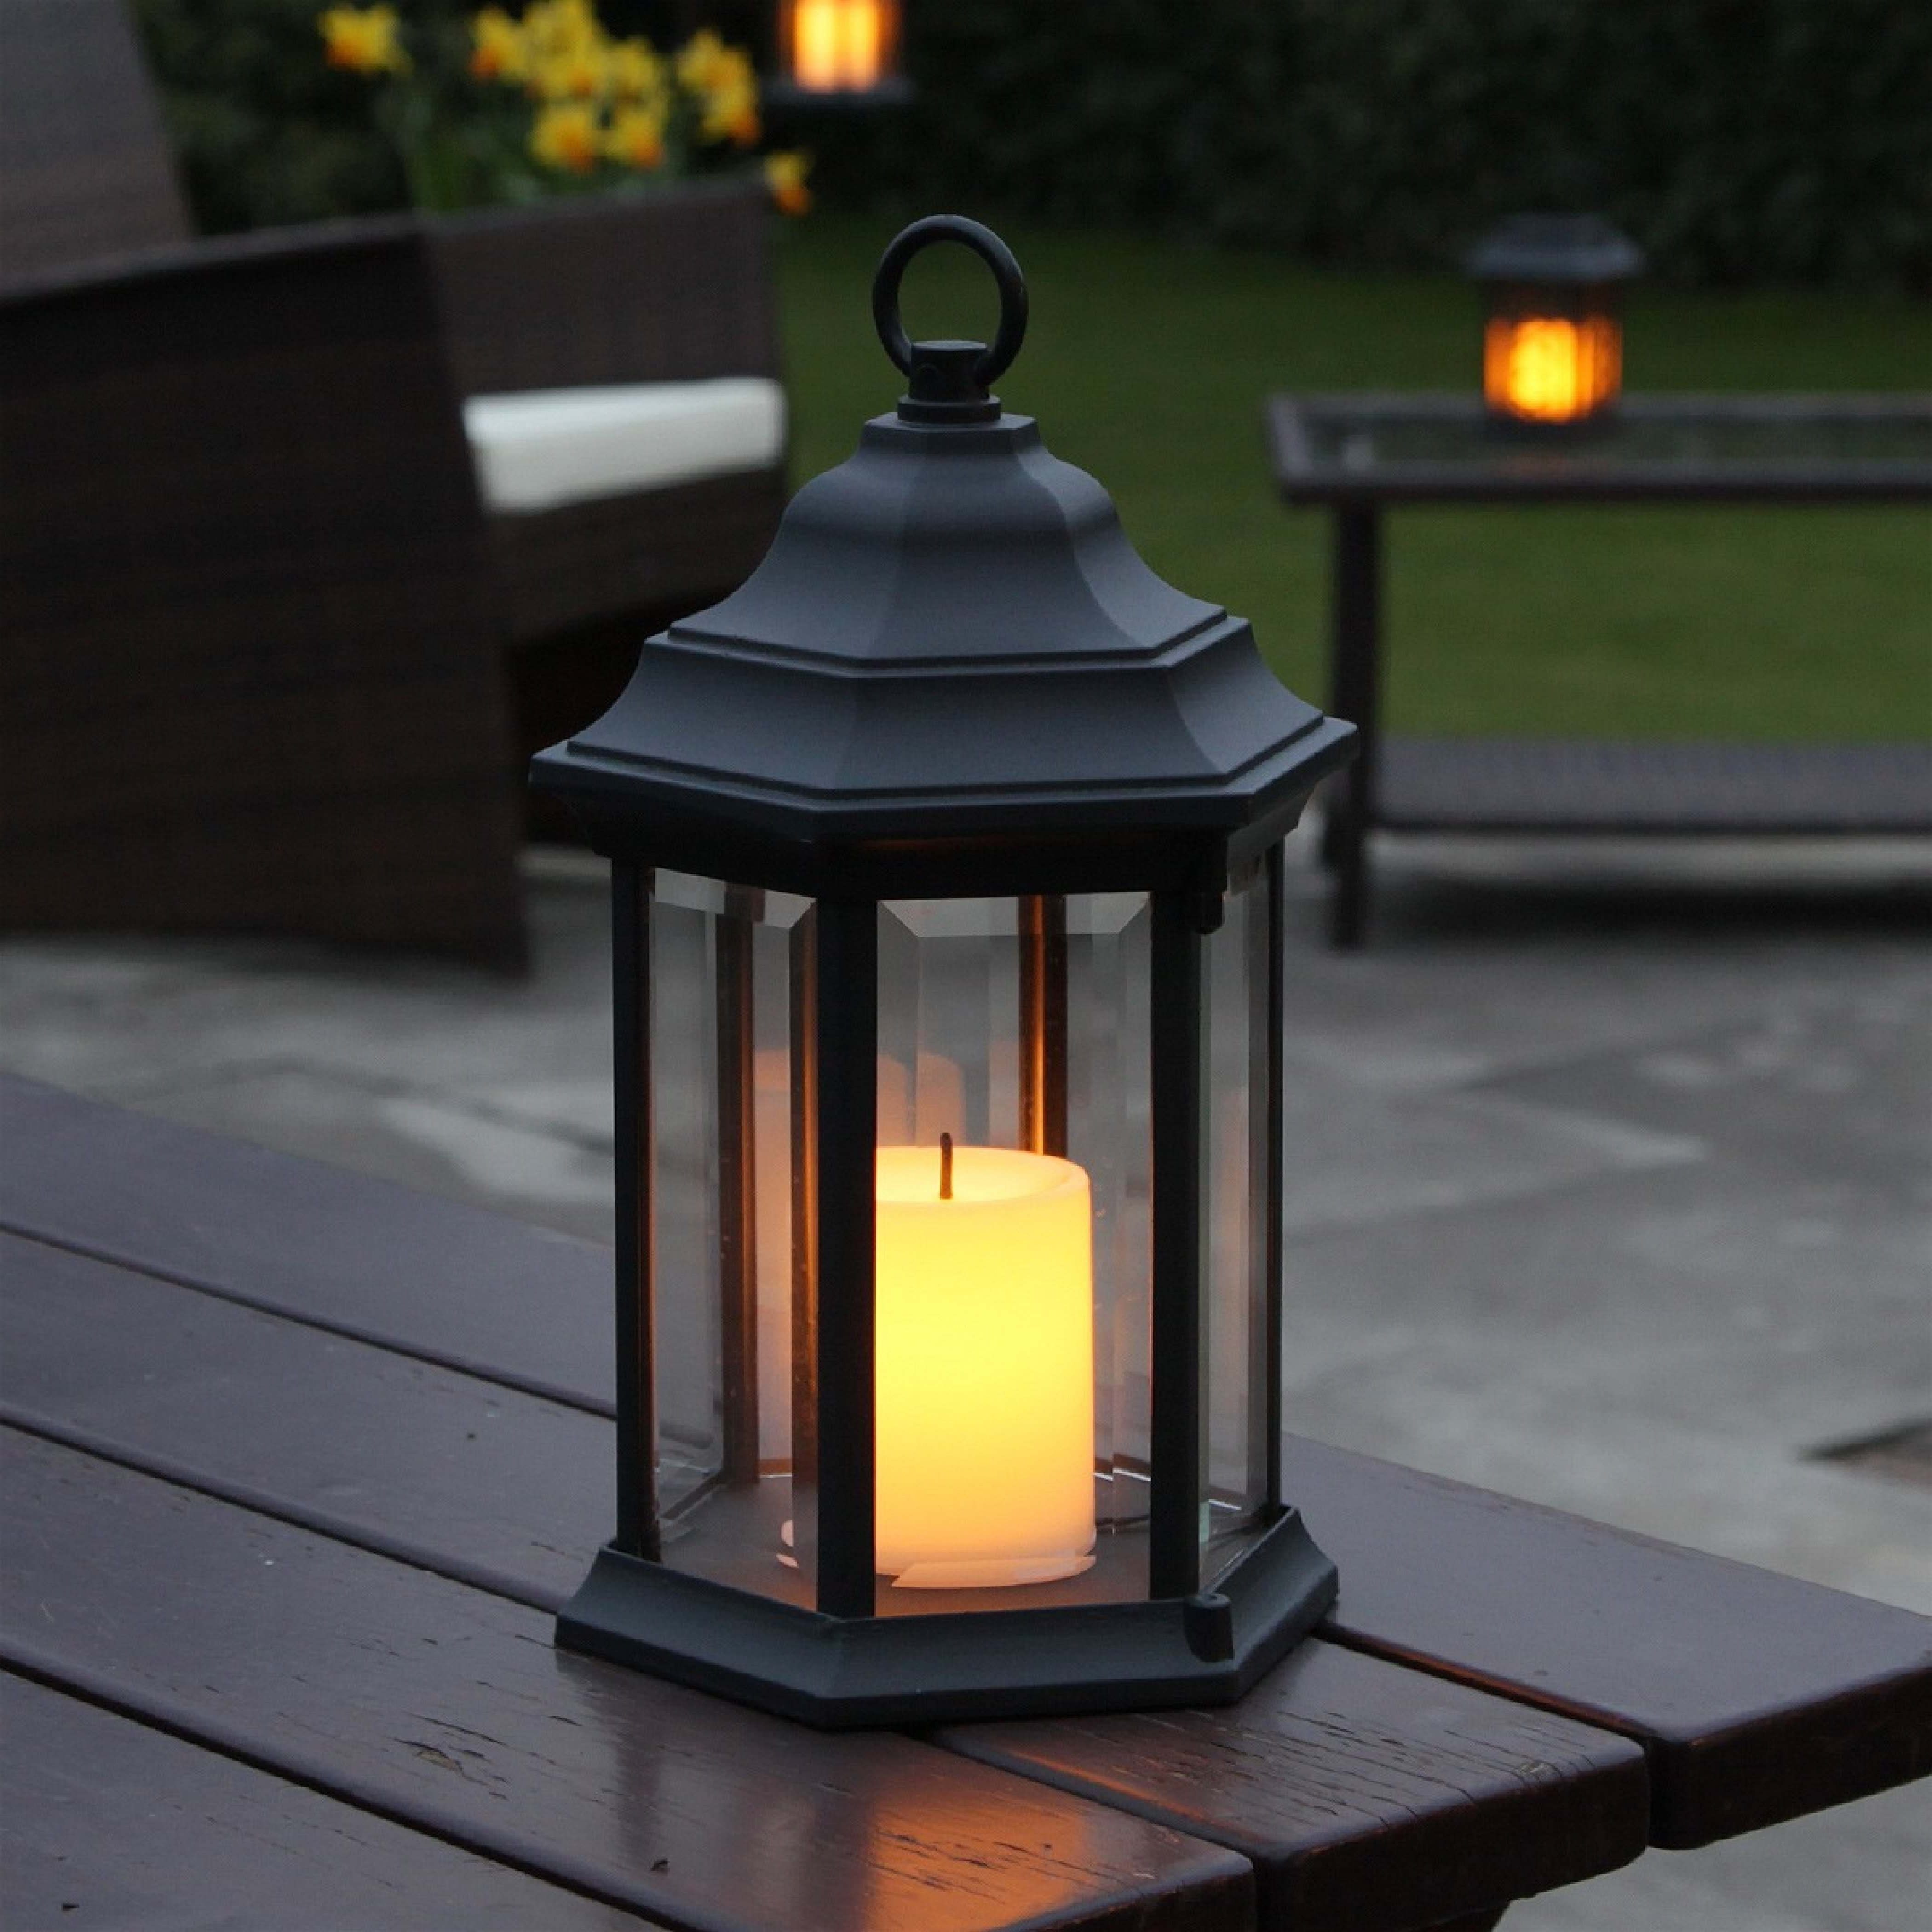 Outdoor Lanterns With Timers Regarding Preferred Outdoor Lanterns With Timers (View 10 of 20)